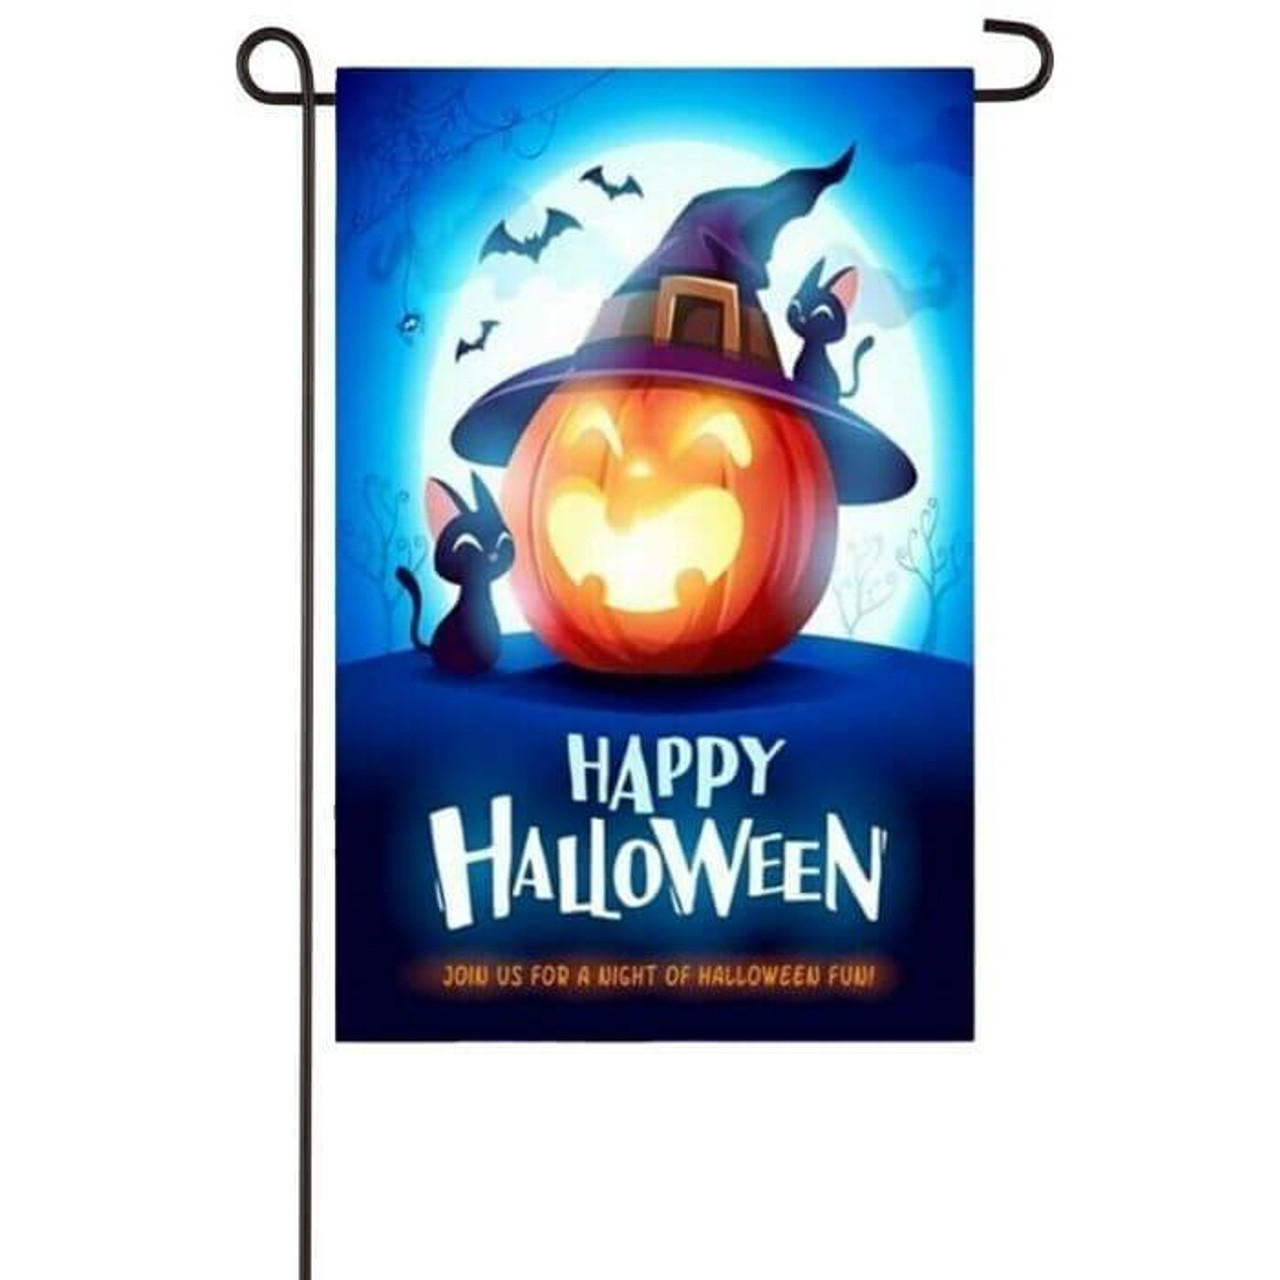 """This garden flag features a smiling jack-o-lantern with a purple witch hat with two black cats sitting by it. In the background is a bright full moon in a night sky with bats flying around. Under the jack-o-lantern is the text """" HAPPY HALLOWEEN"""" in white and """"JOIN US FOR A NIGHT OF HALLOWEEN FUN!"""" in orange."""